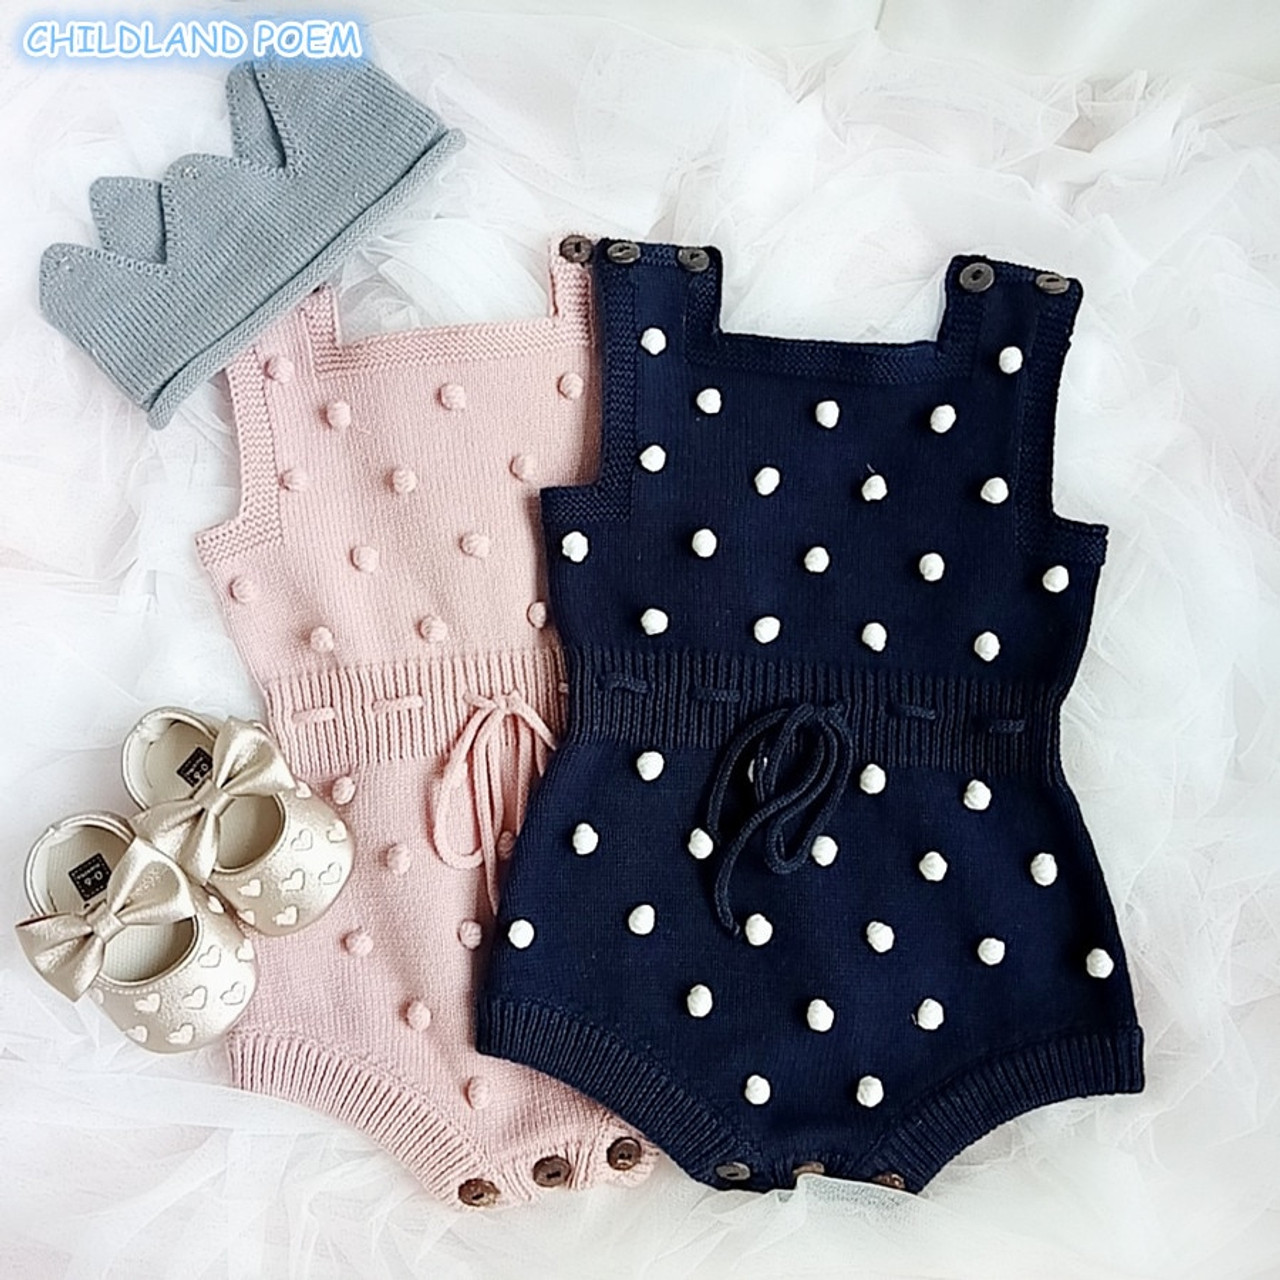 aaa3e15b5 Baby Knitted Clothes Autumn Knit Baby Rompers Girl Pompom Baby Girl Romper  Boys Jumpsuit Overall Newnborn Infant Baby Clothes